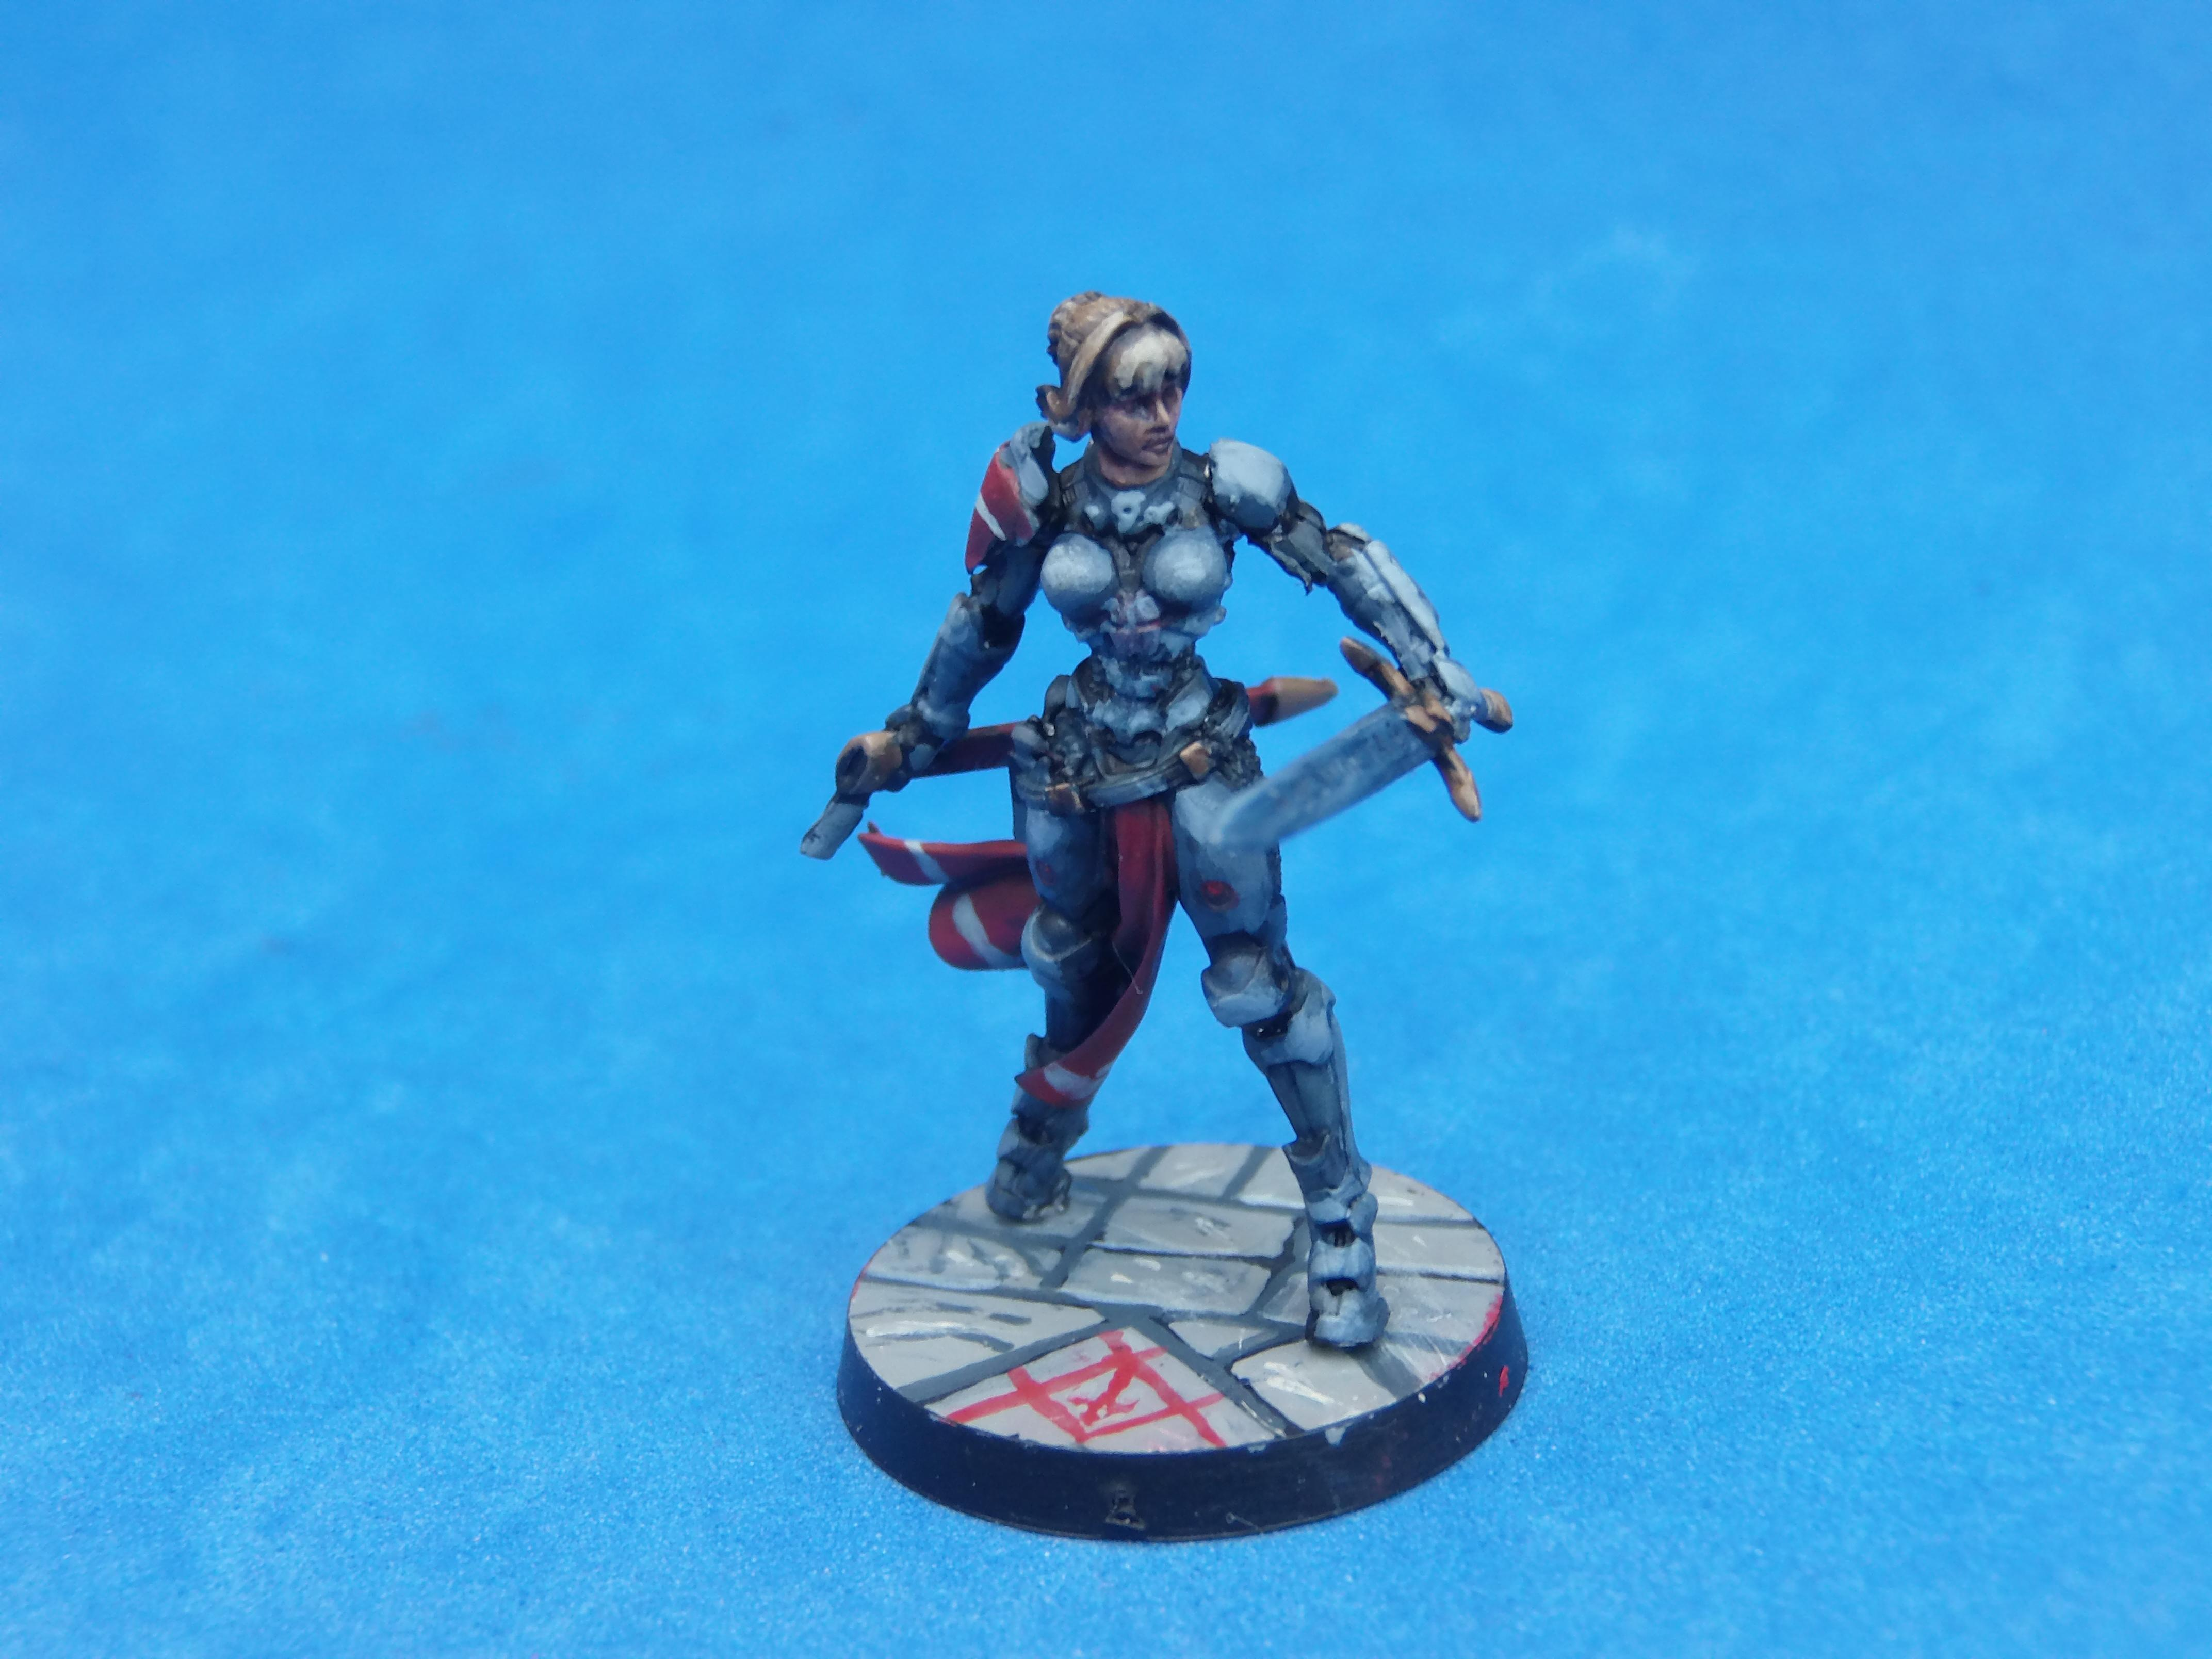 Infinity, Joan Of Arc, Limited Edition, Non-Metallic Metal